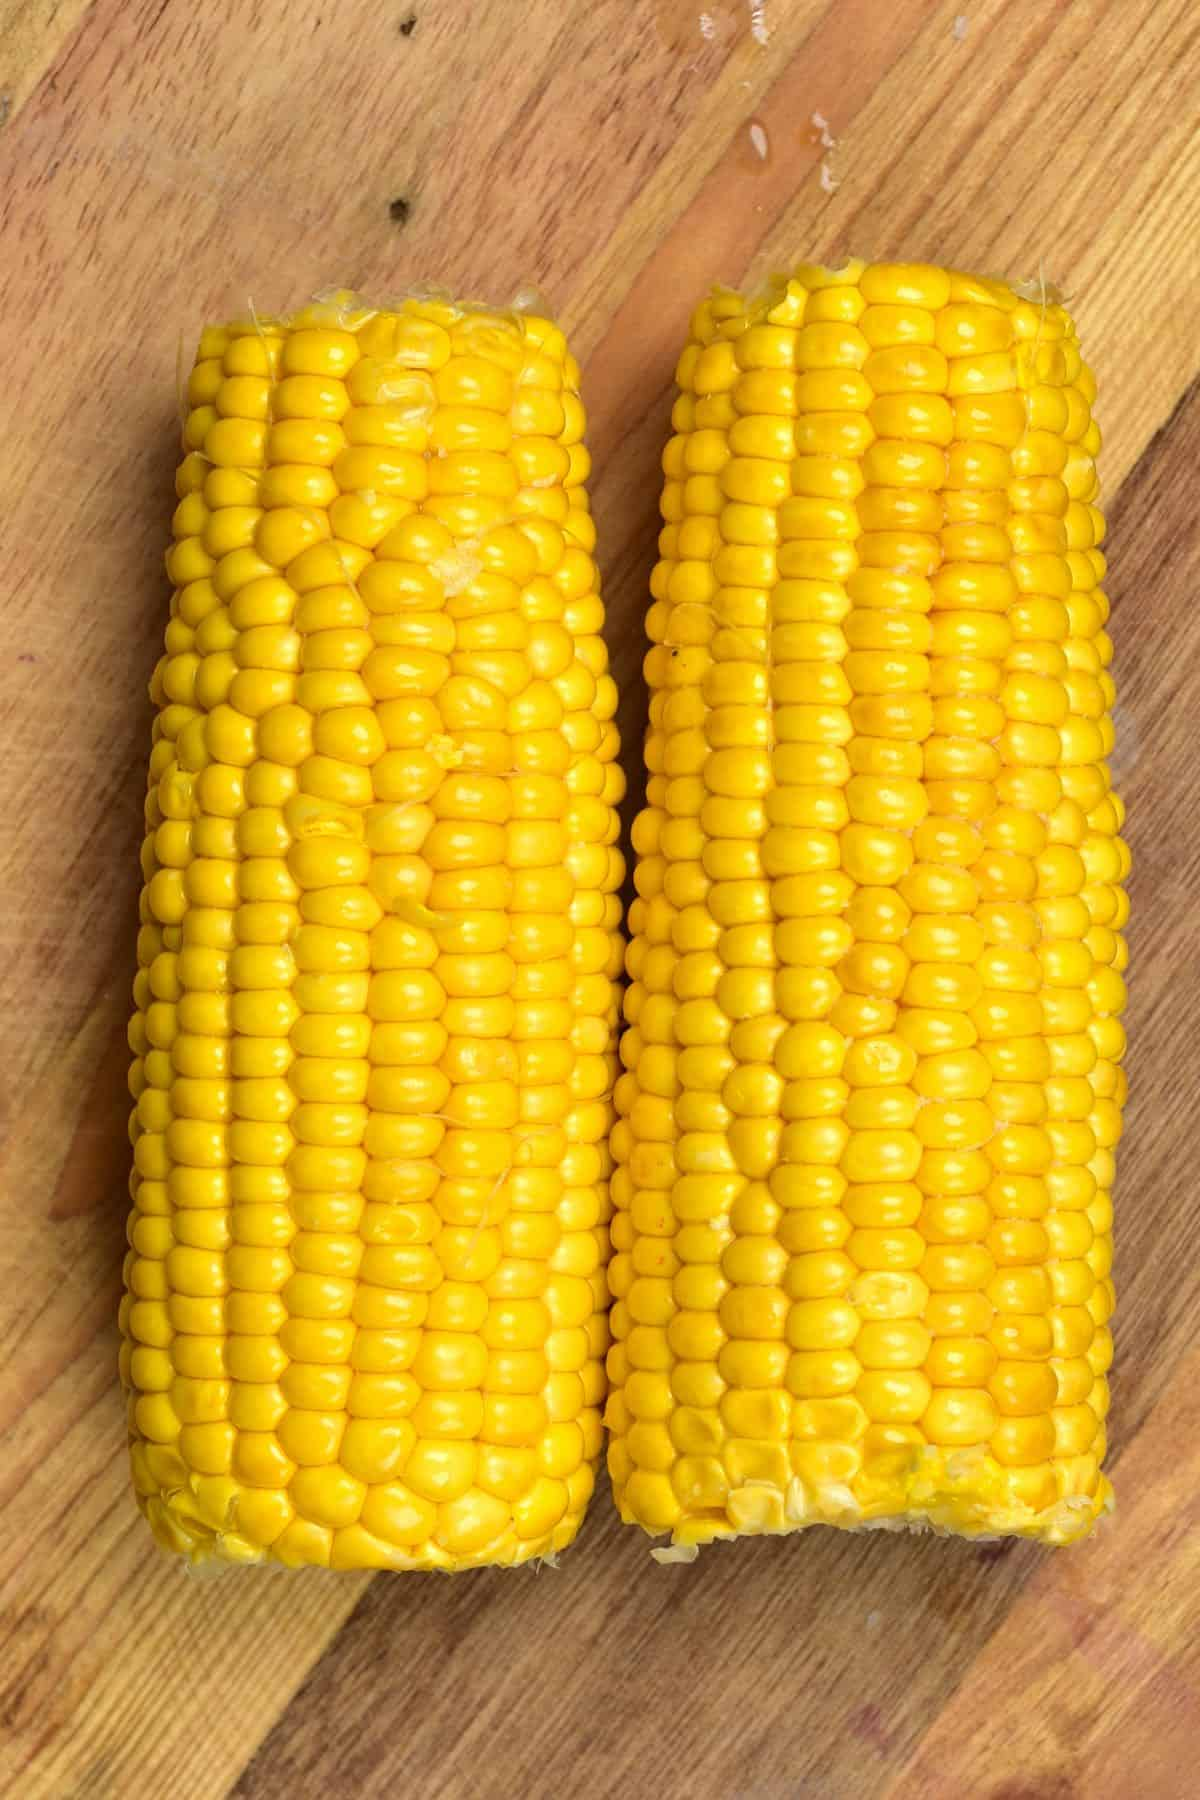 Two corn on cobs